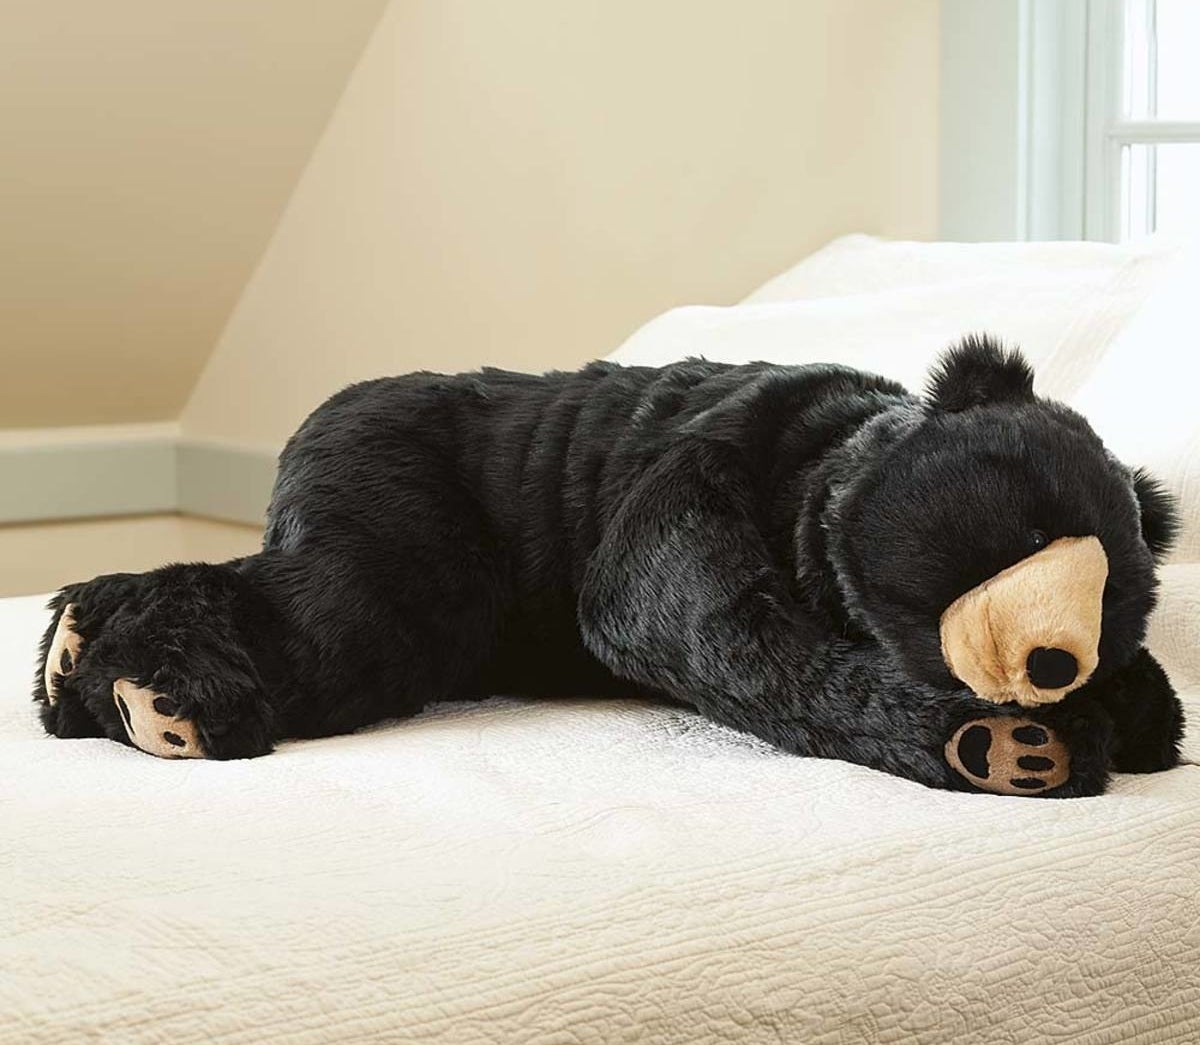 the black bear plush cuddle body pillow on a bed